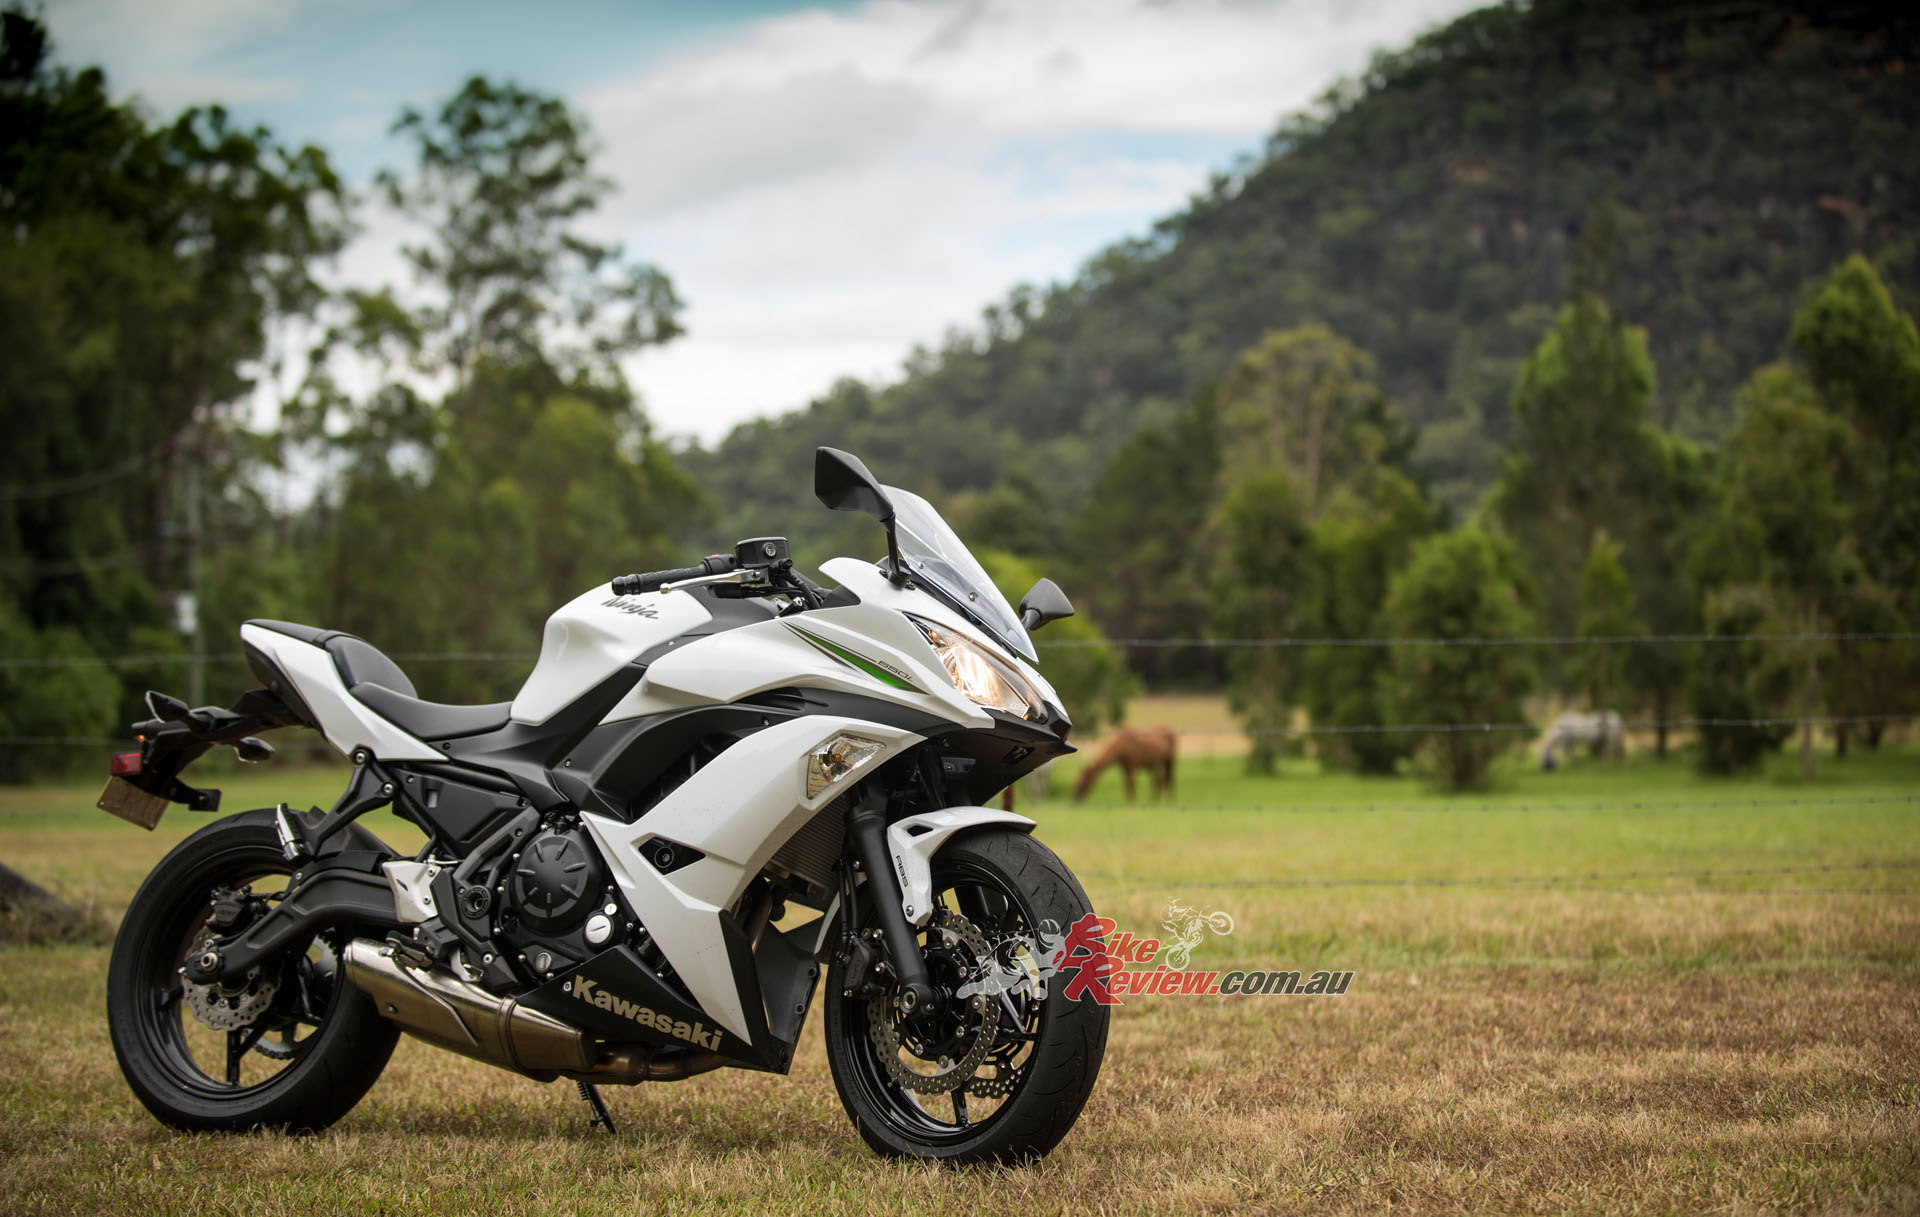 The chassis has also been an area of intense focus with the development of the Ninja 650L, with the combination of 790mm seat height, slim chassis and then between the knees tank making for an easy reach to the ground.